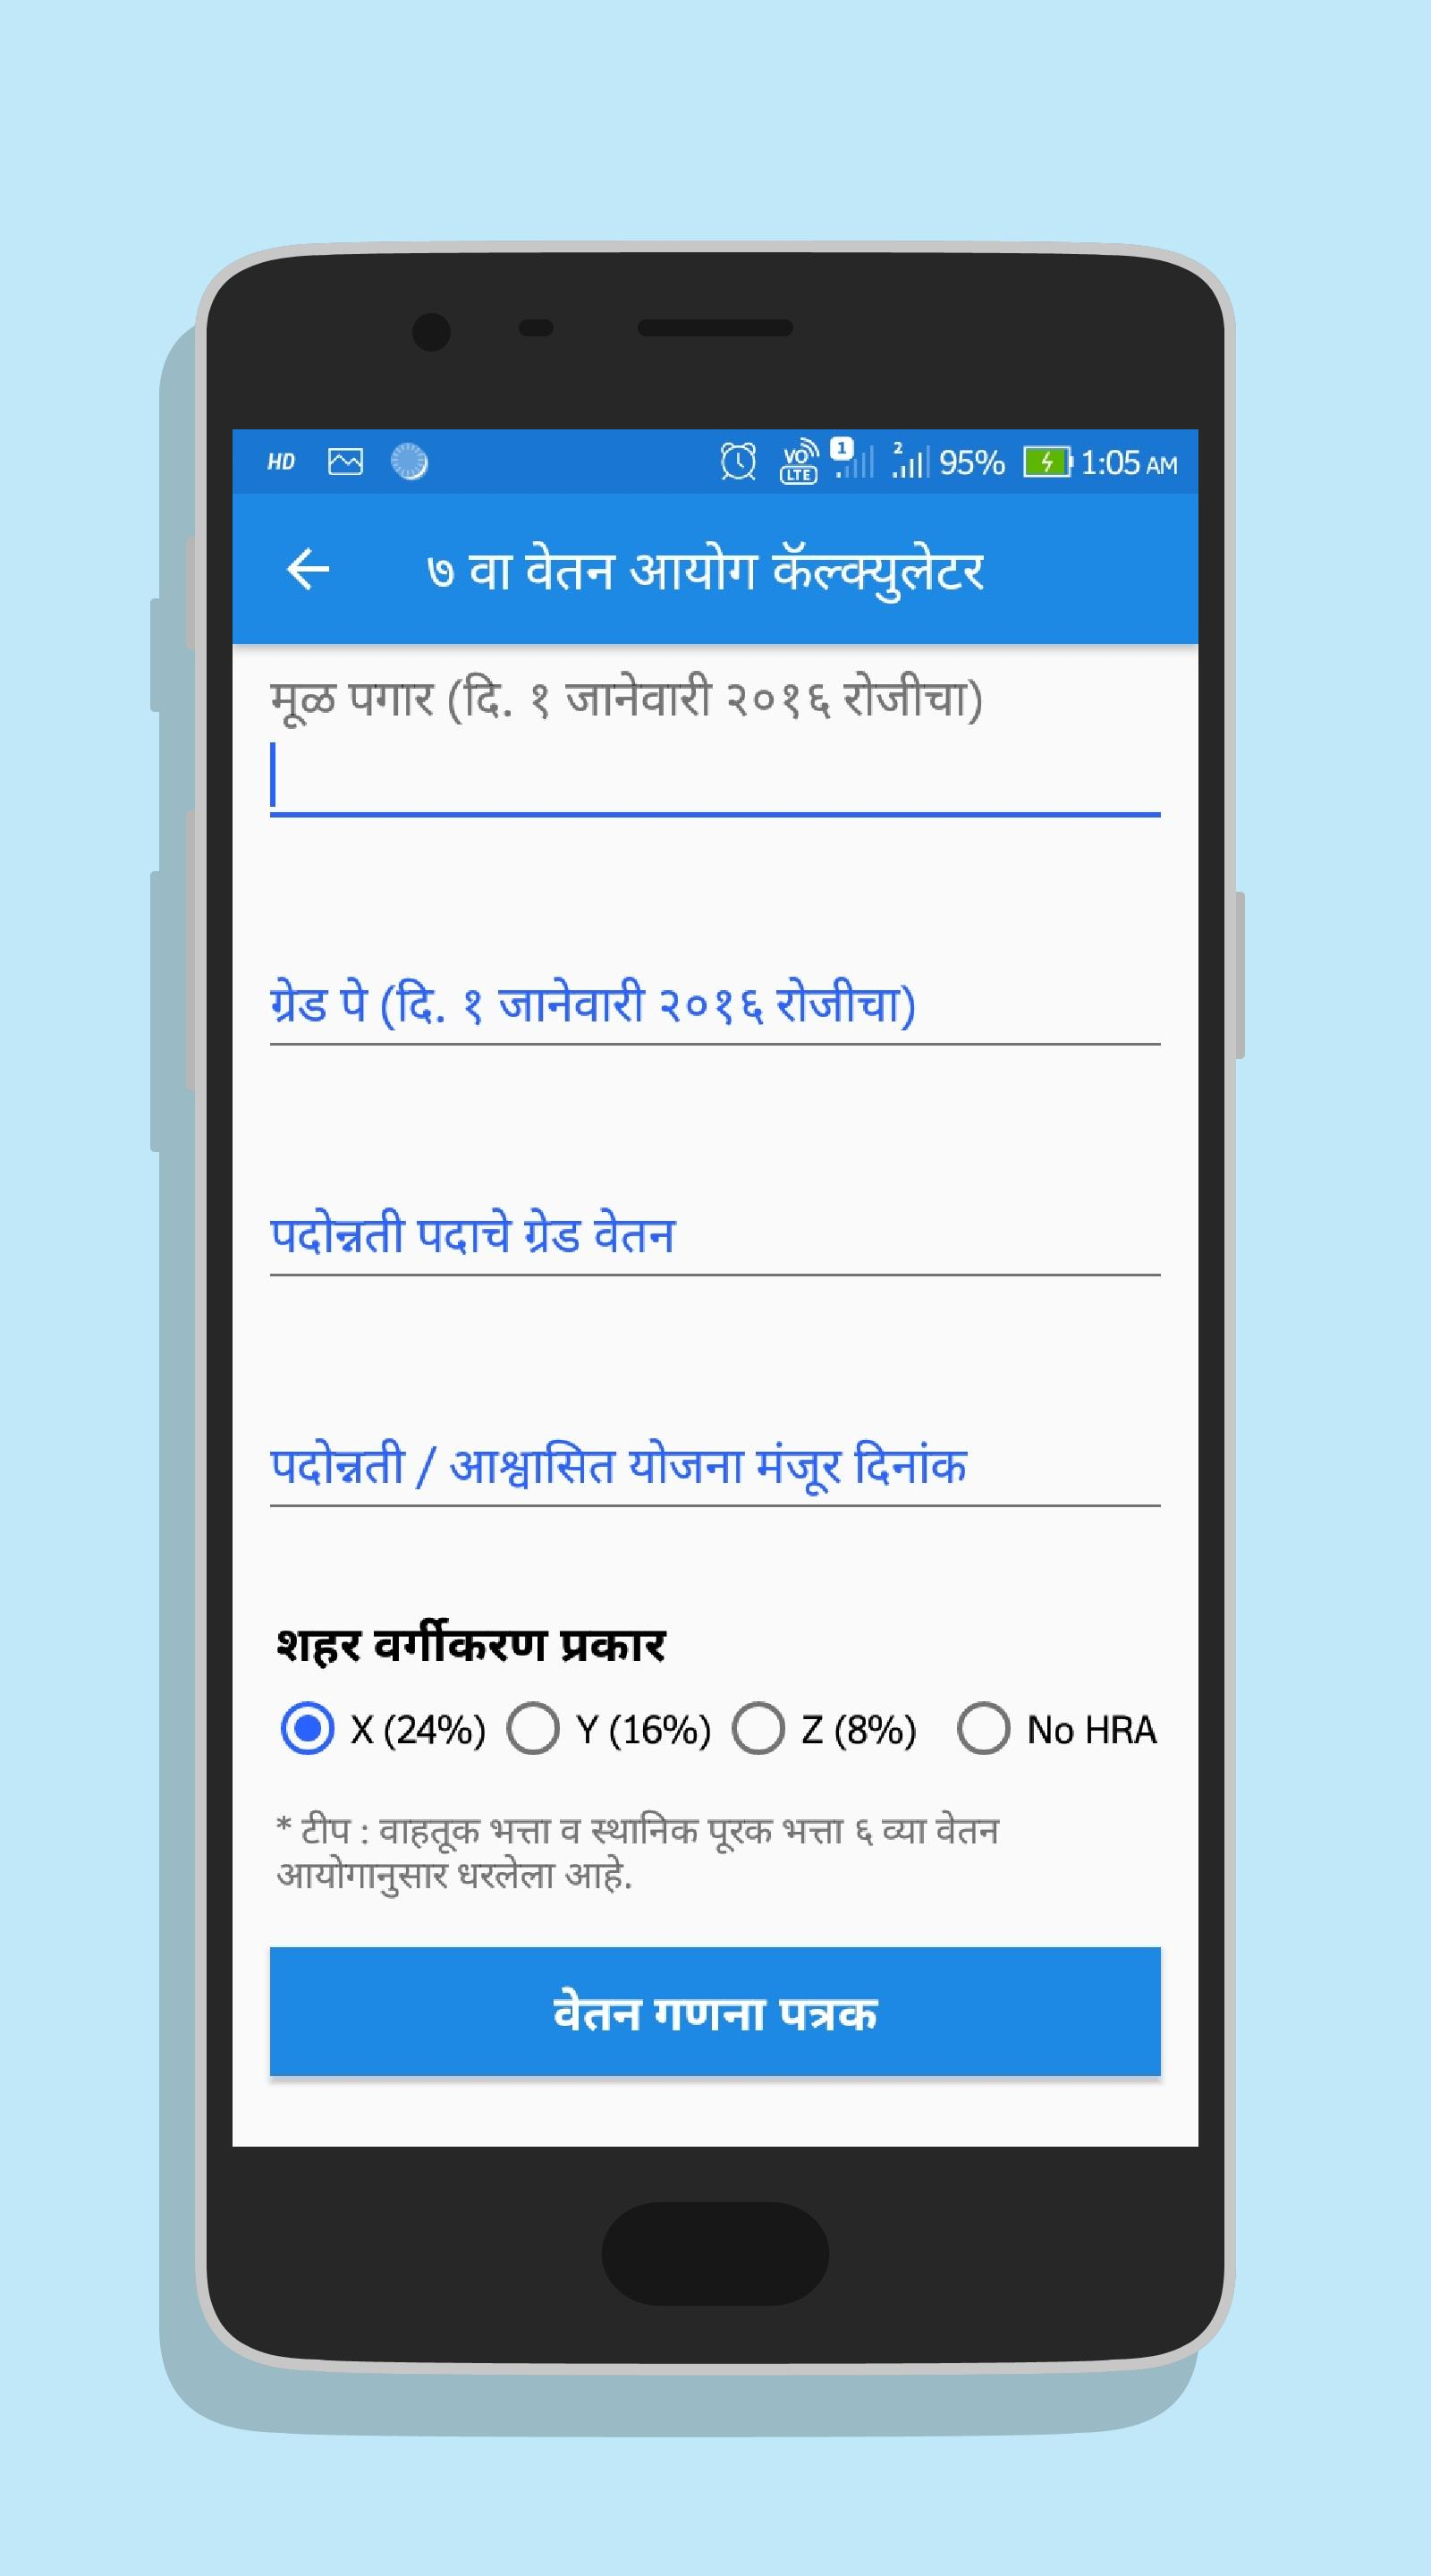 7th Pay Commission Calculator - Maharashtra for Android